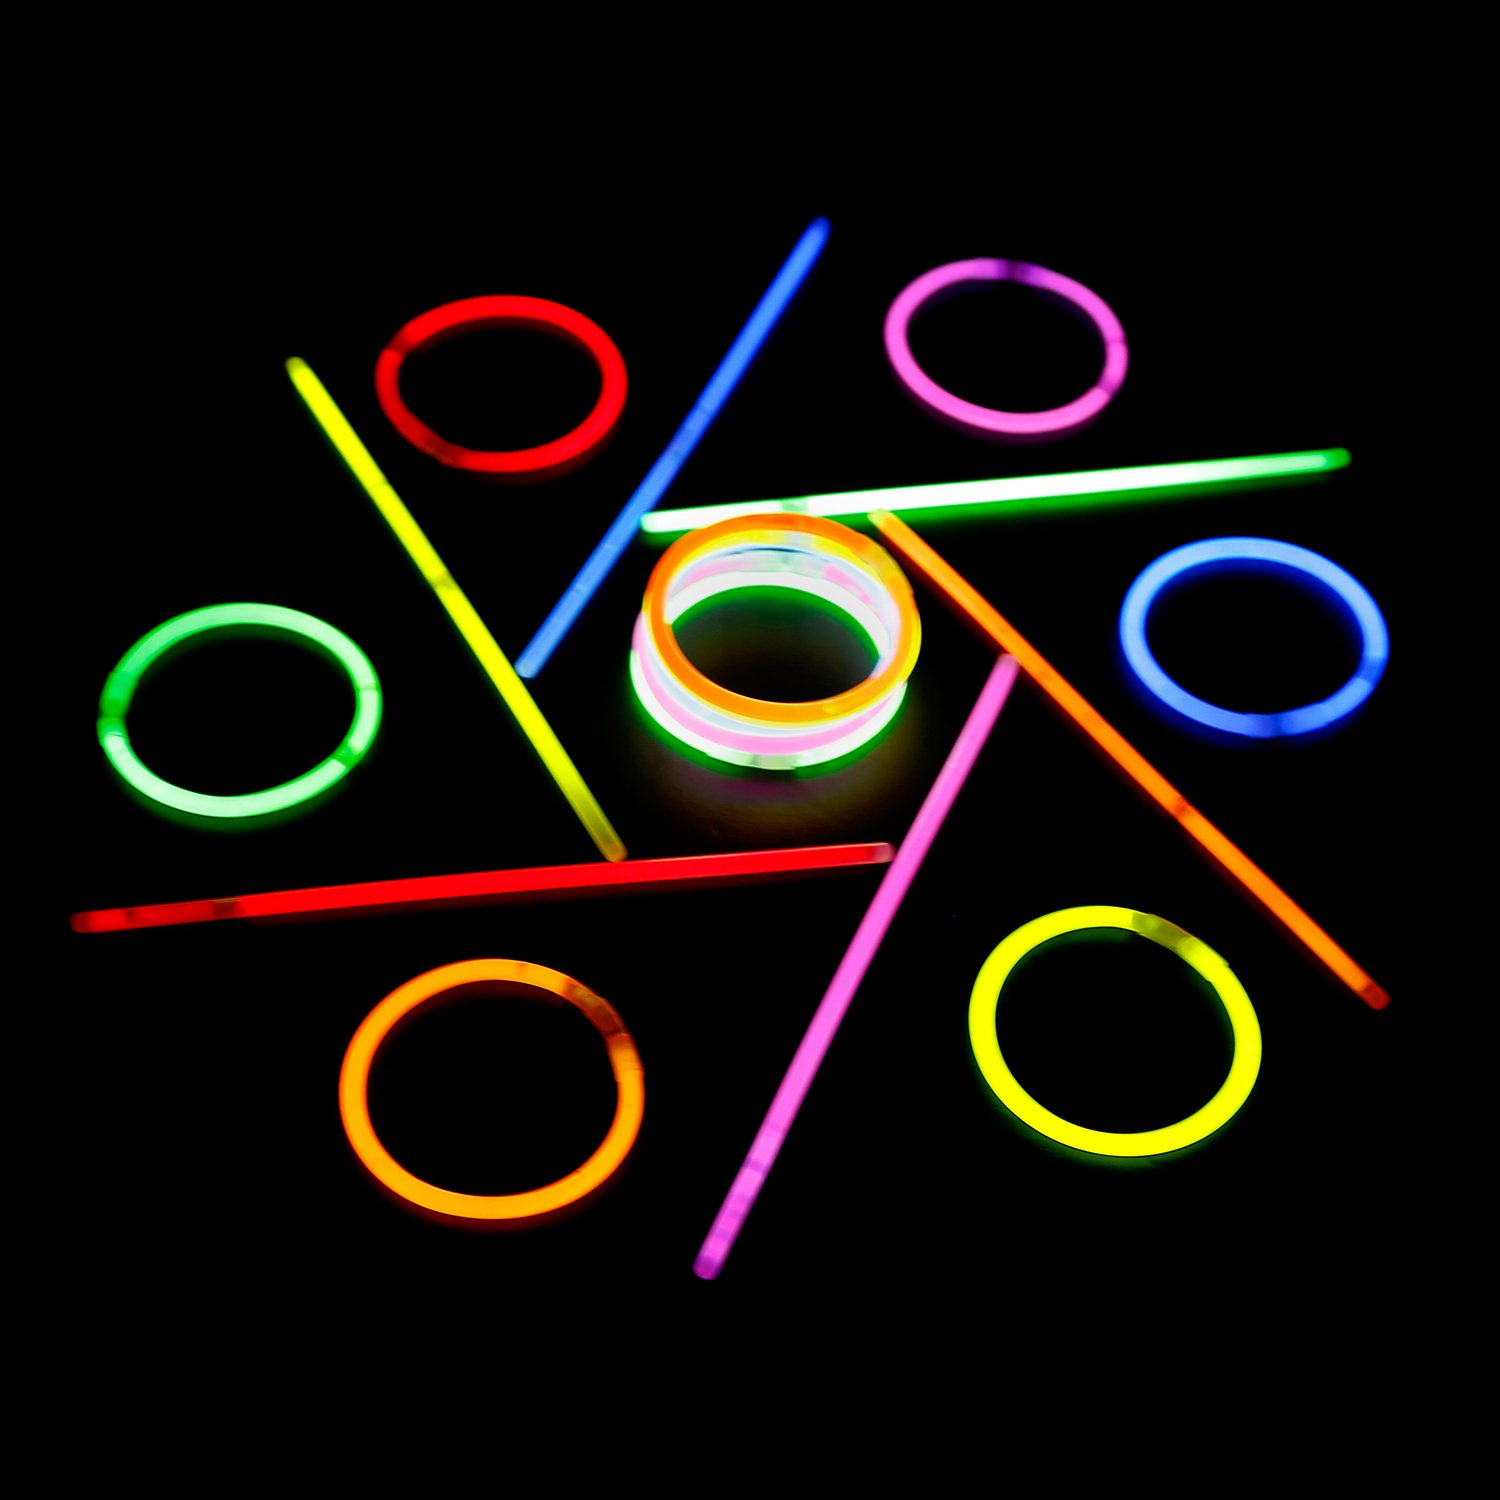 Kid Safe Non-toxic Glowstick Party Pack Authentic Lumistick Brand 300 8 Glow Sticks with Connectors Bright Glow Long Lasting GLM-SZT5200-23908SMF-100-3 for Light Up Bracelets and Necklaces Total 600 Pcs Assorted, 300